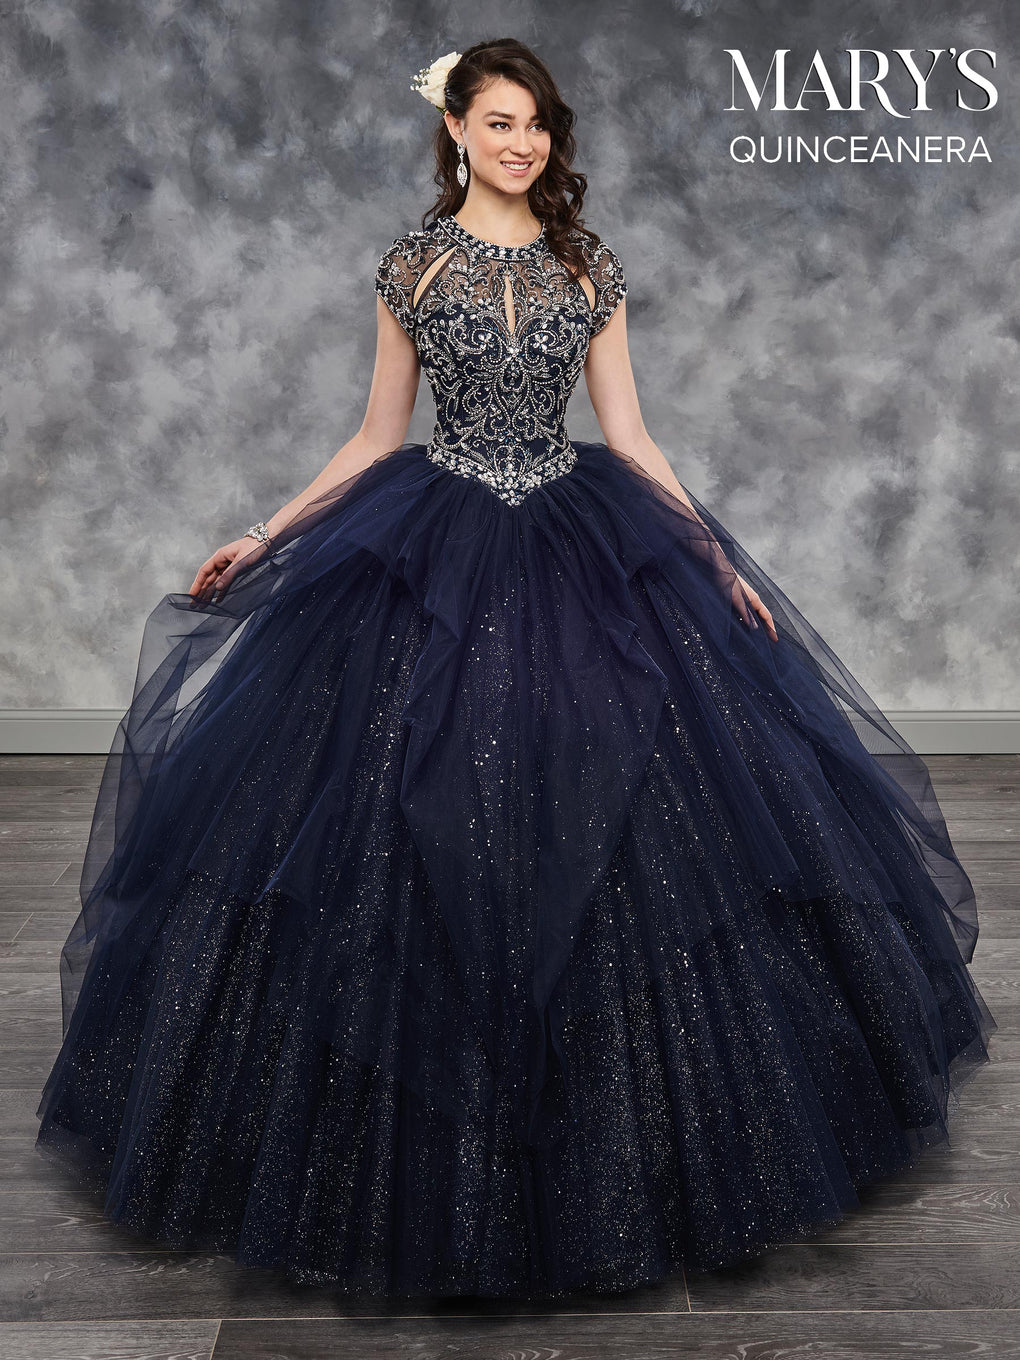 Marys Quinceanera Dresses in Blush, Champagne, Midnight Blue, or White Color